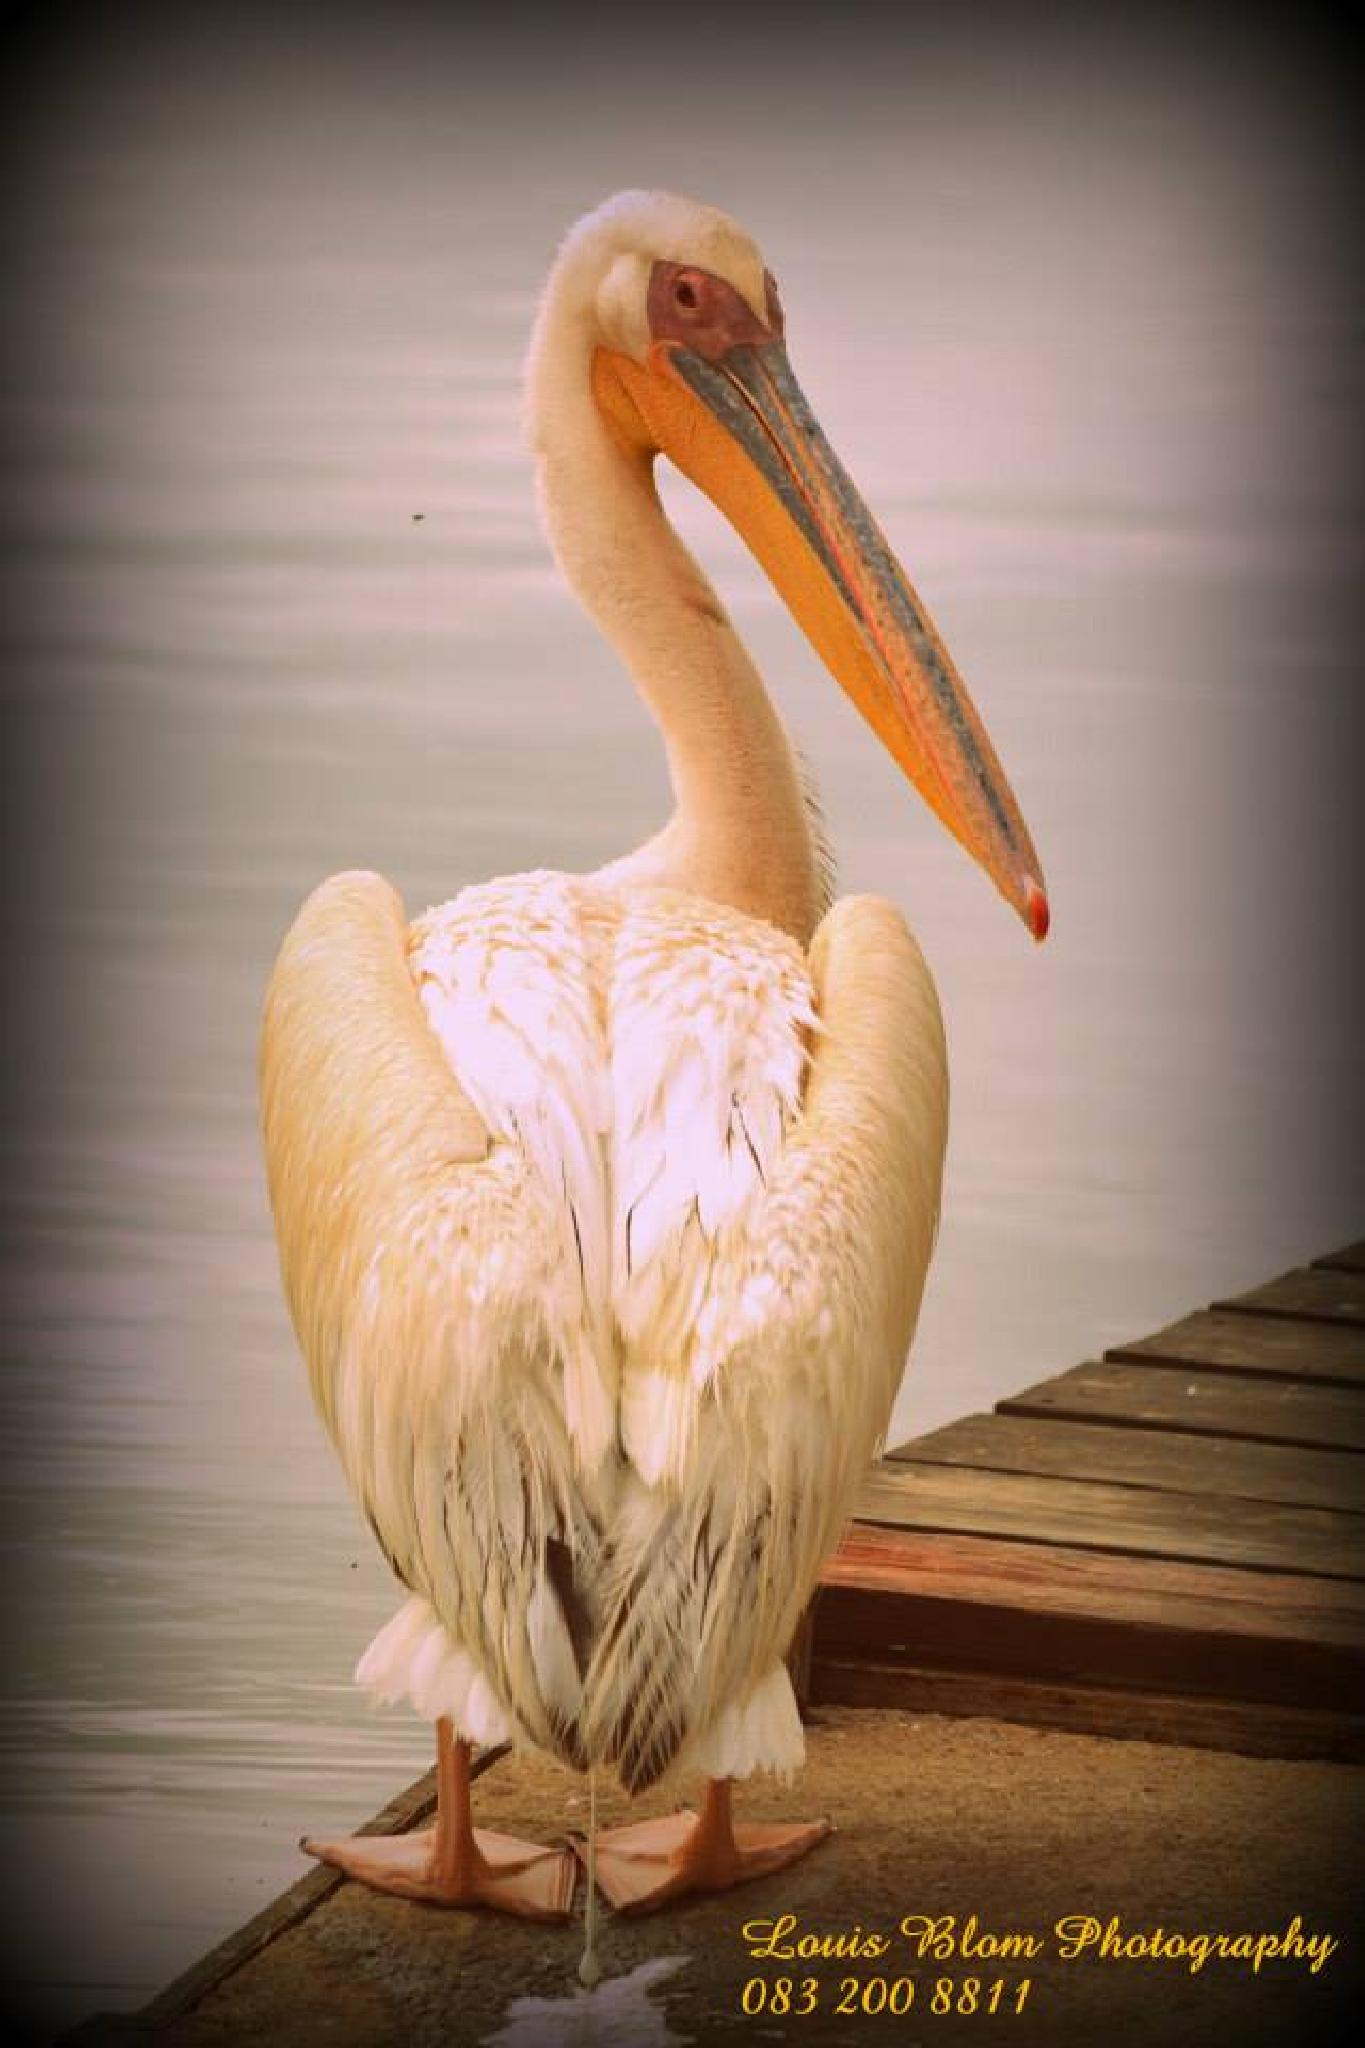 Pelican by Louis Blom Photography